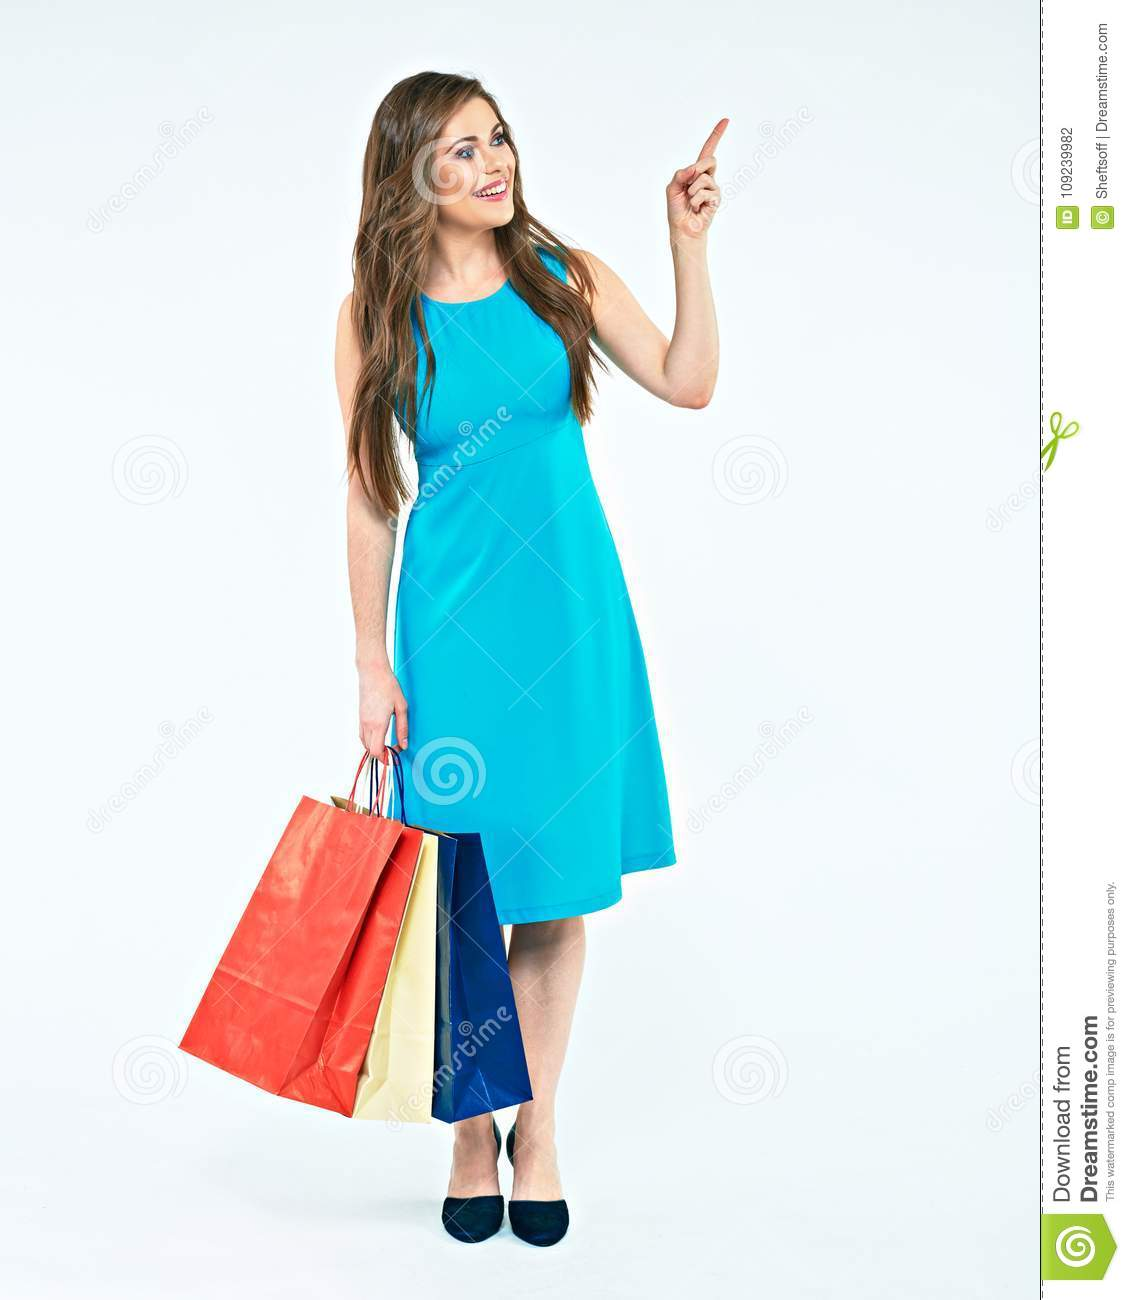 Full body portrait of young woman with shopping bag pointing fin